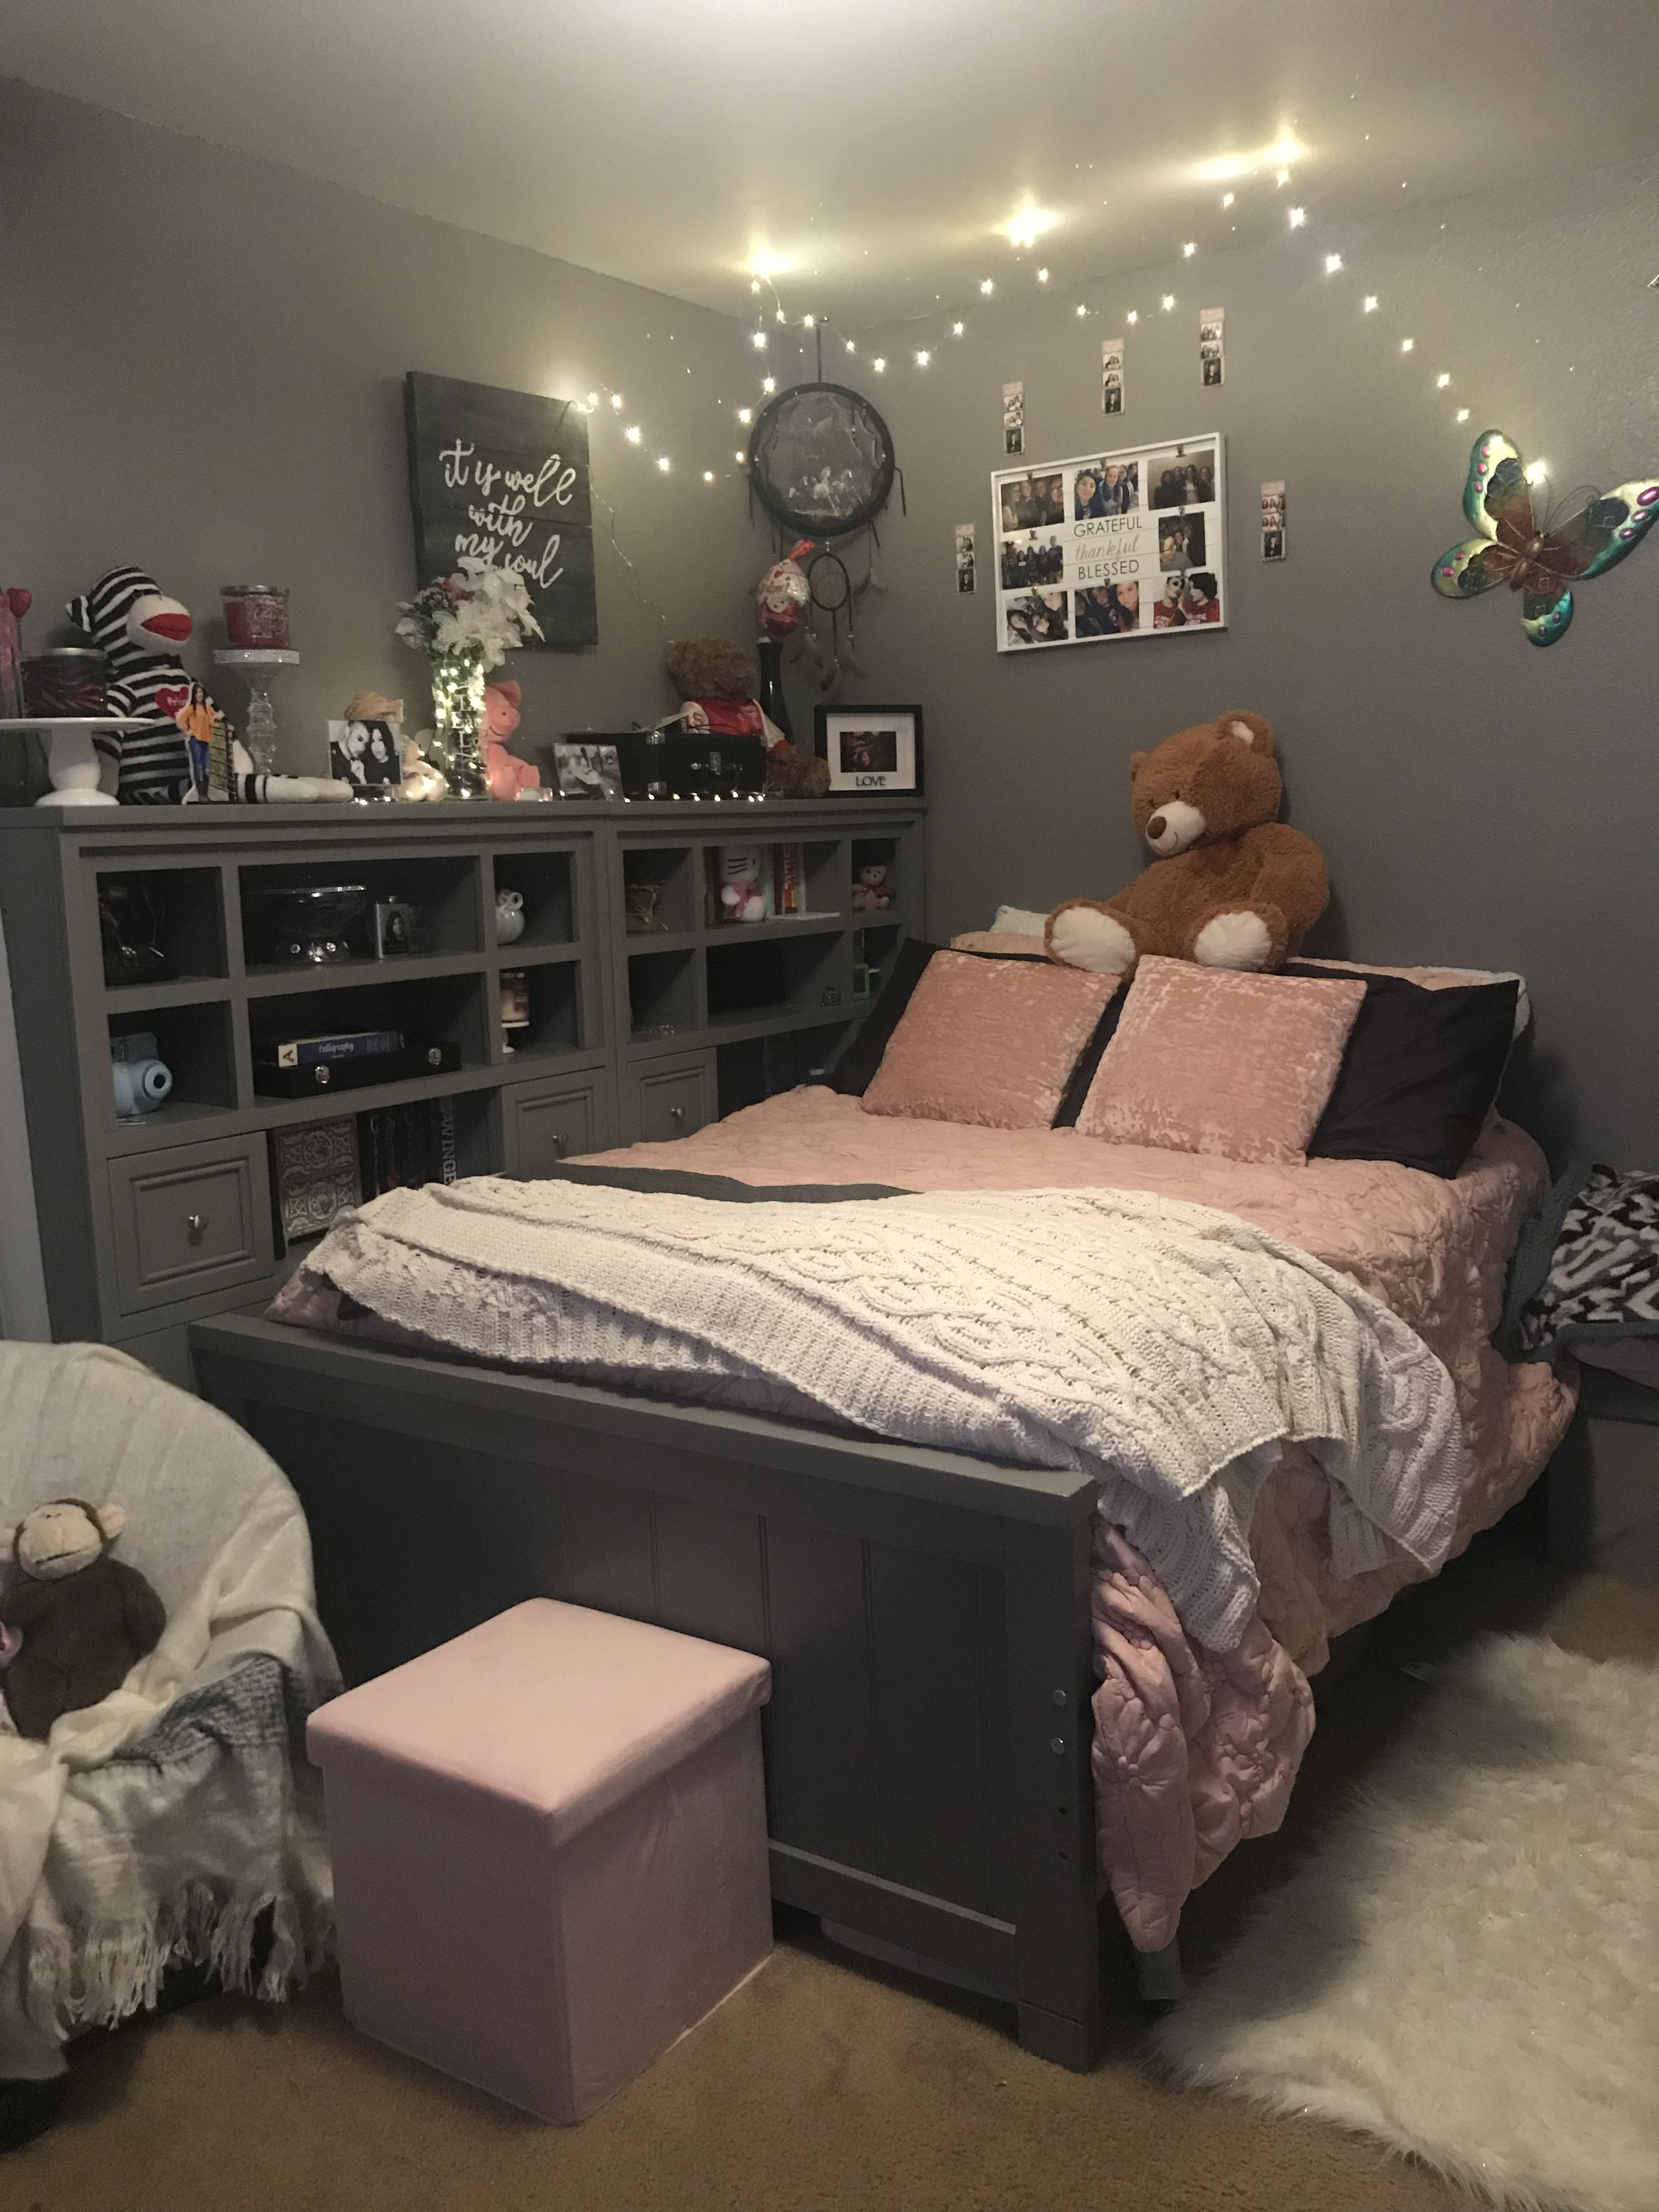 30 Teen Bedroom Ideas For Girls Cozy Functional Stylish Cool Bedroom Remodeling Bedroom Small Room Bedroom Teenage Girl Bedrooms